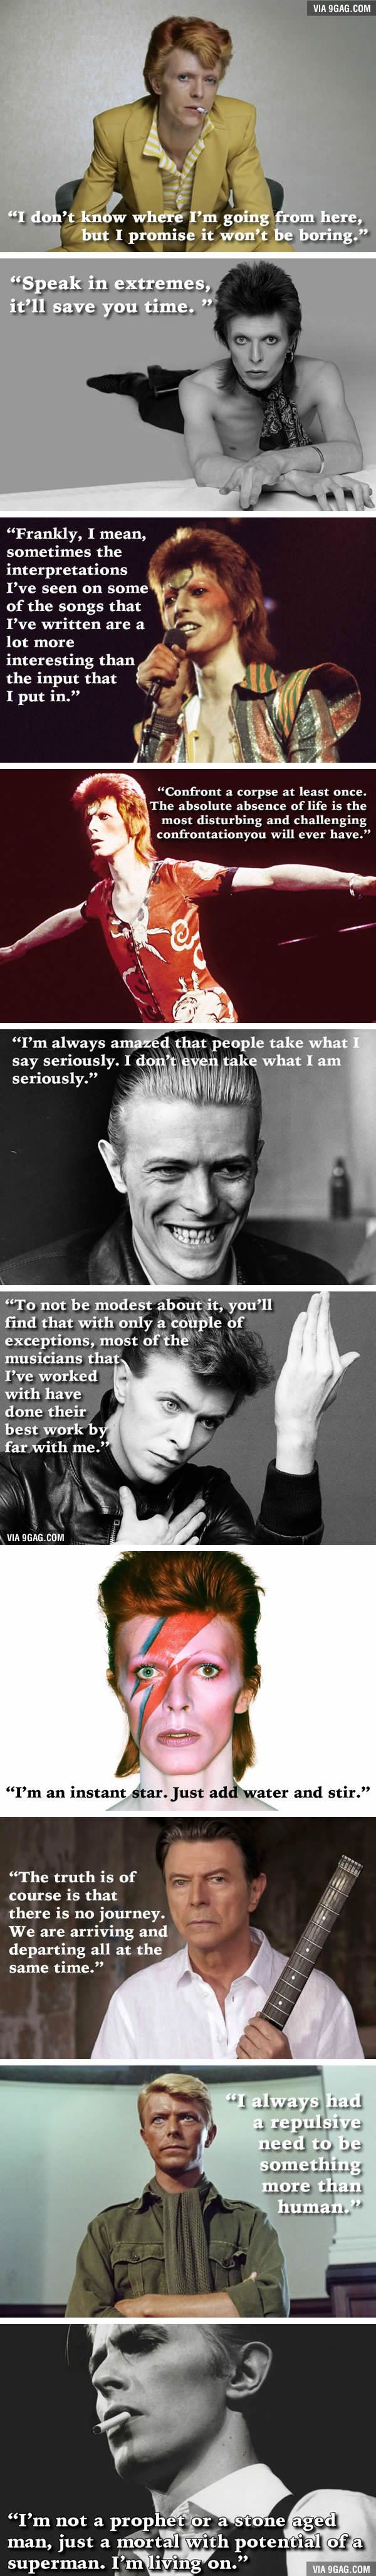 On January 11th, the world wept when we learned that the musical legend, David Bowie, had passed away the day before. Not only was David Bowie an awesome musician, he was a strange and enigmatic man, from way back in his 'Ziggy Stardust' days up to the time he died. And, you can bet that he left behind some insanely quotable nuggets of wisdom throughout the years! Take a look!